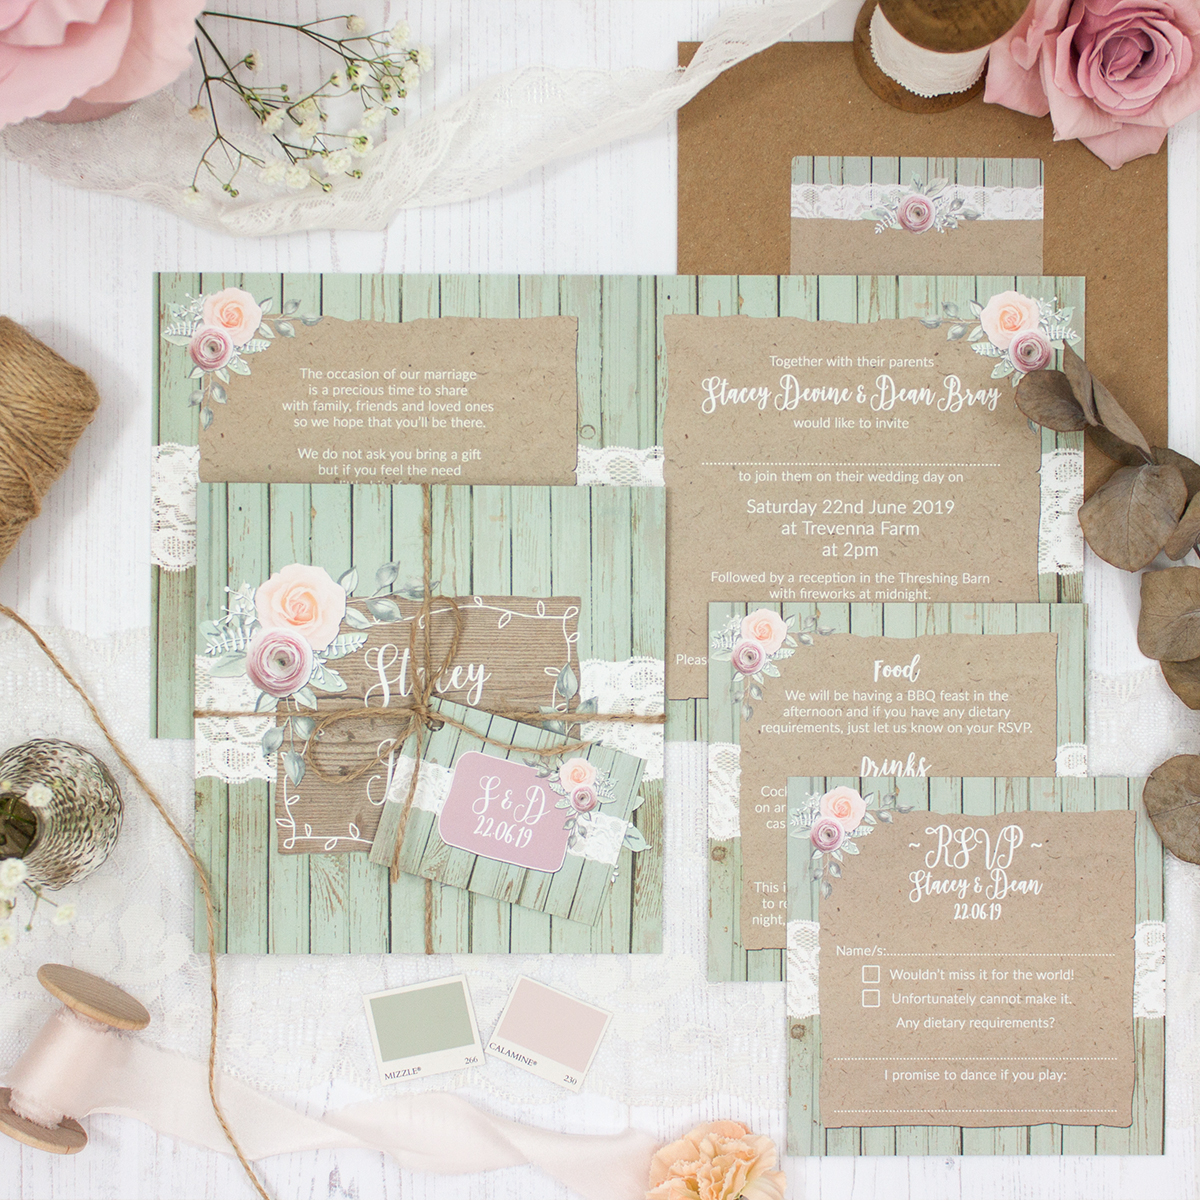 Ophelia Sage Wedding showing invitation